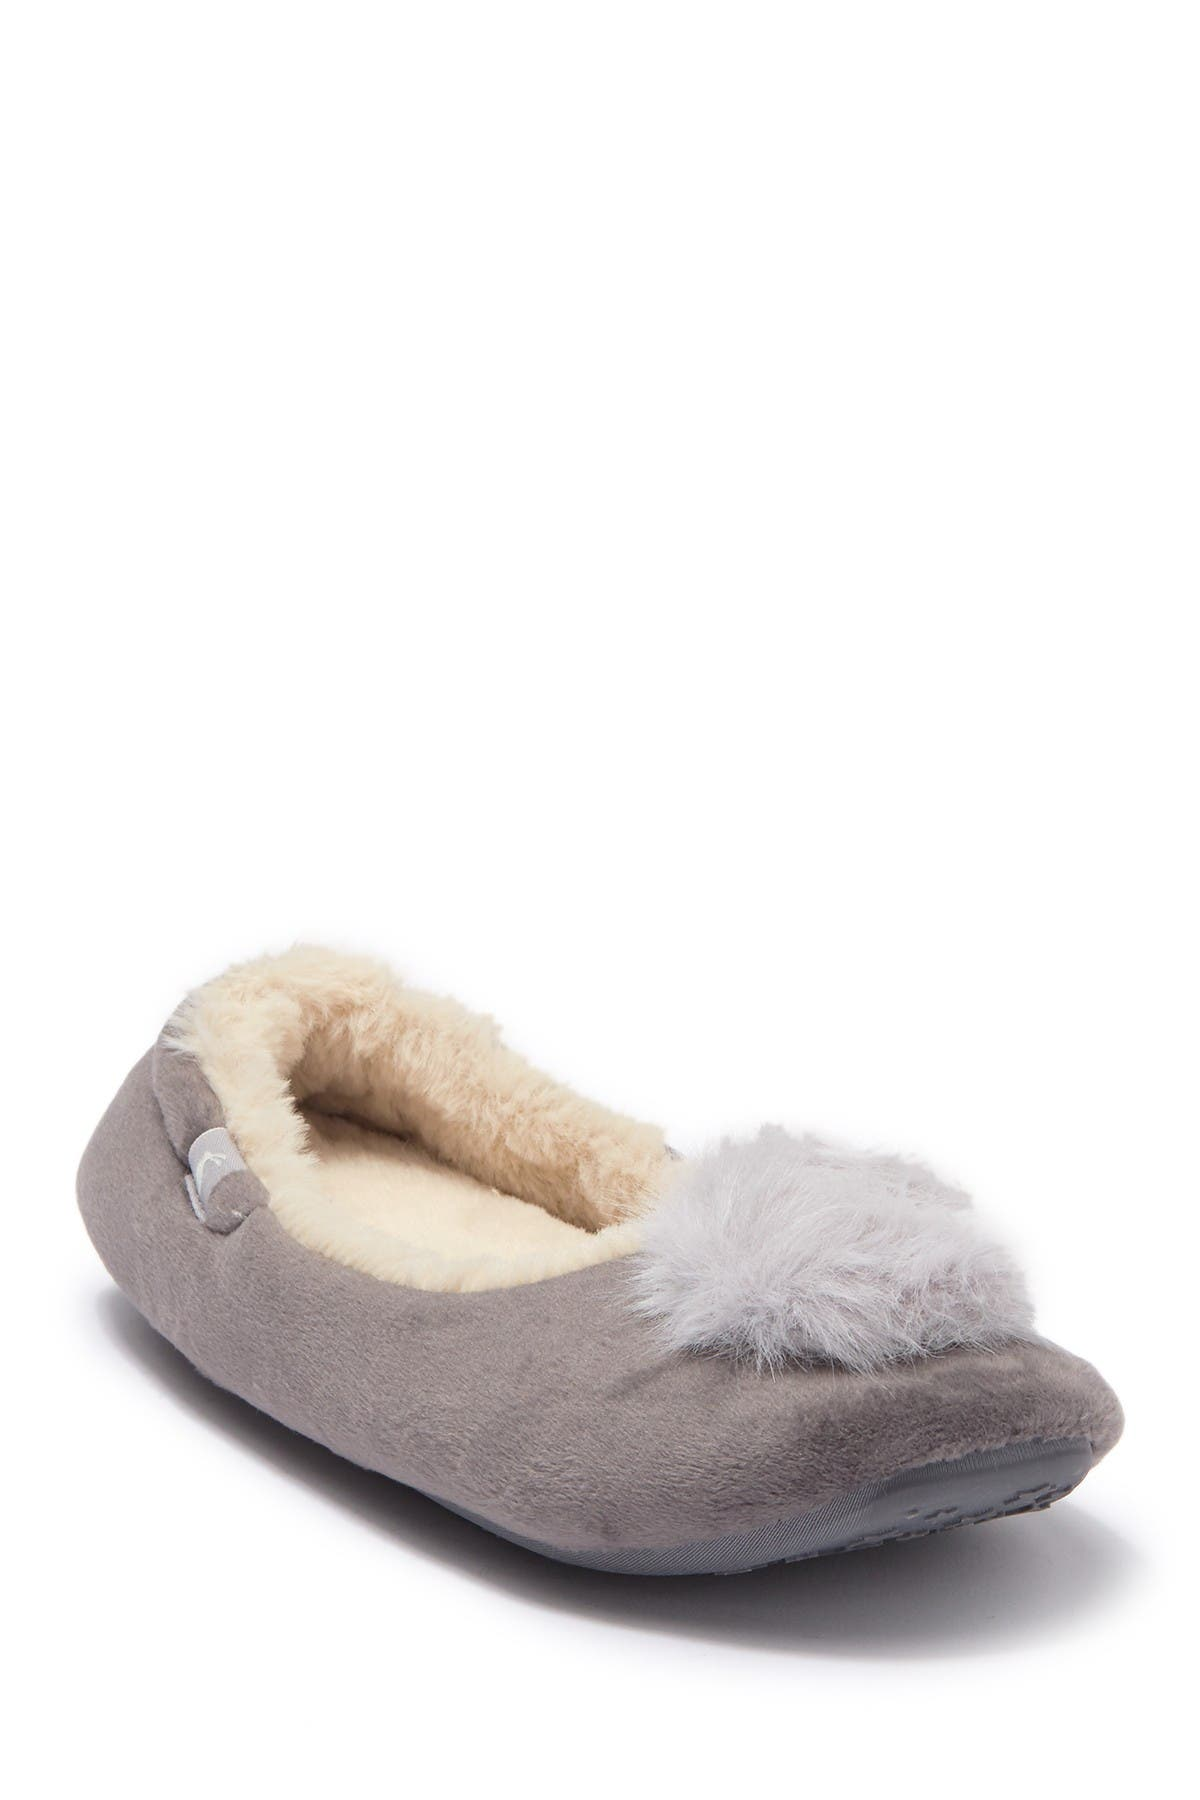 Image of Joules Pombury Faux Fur Ballet Slipper